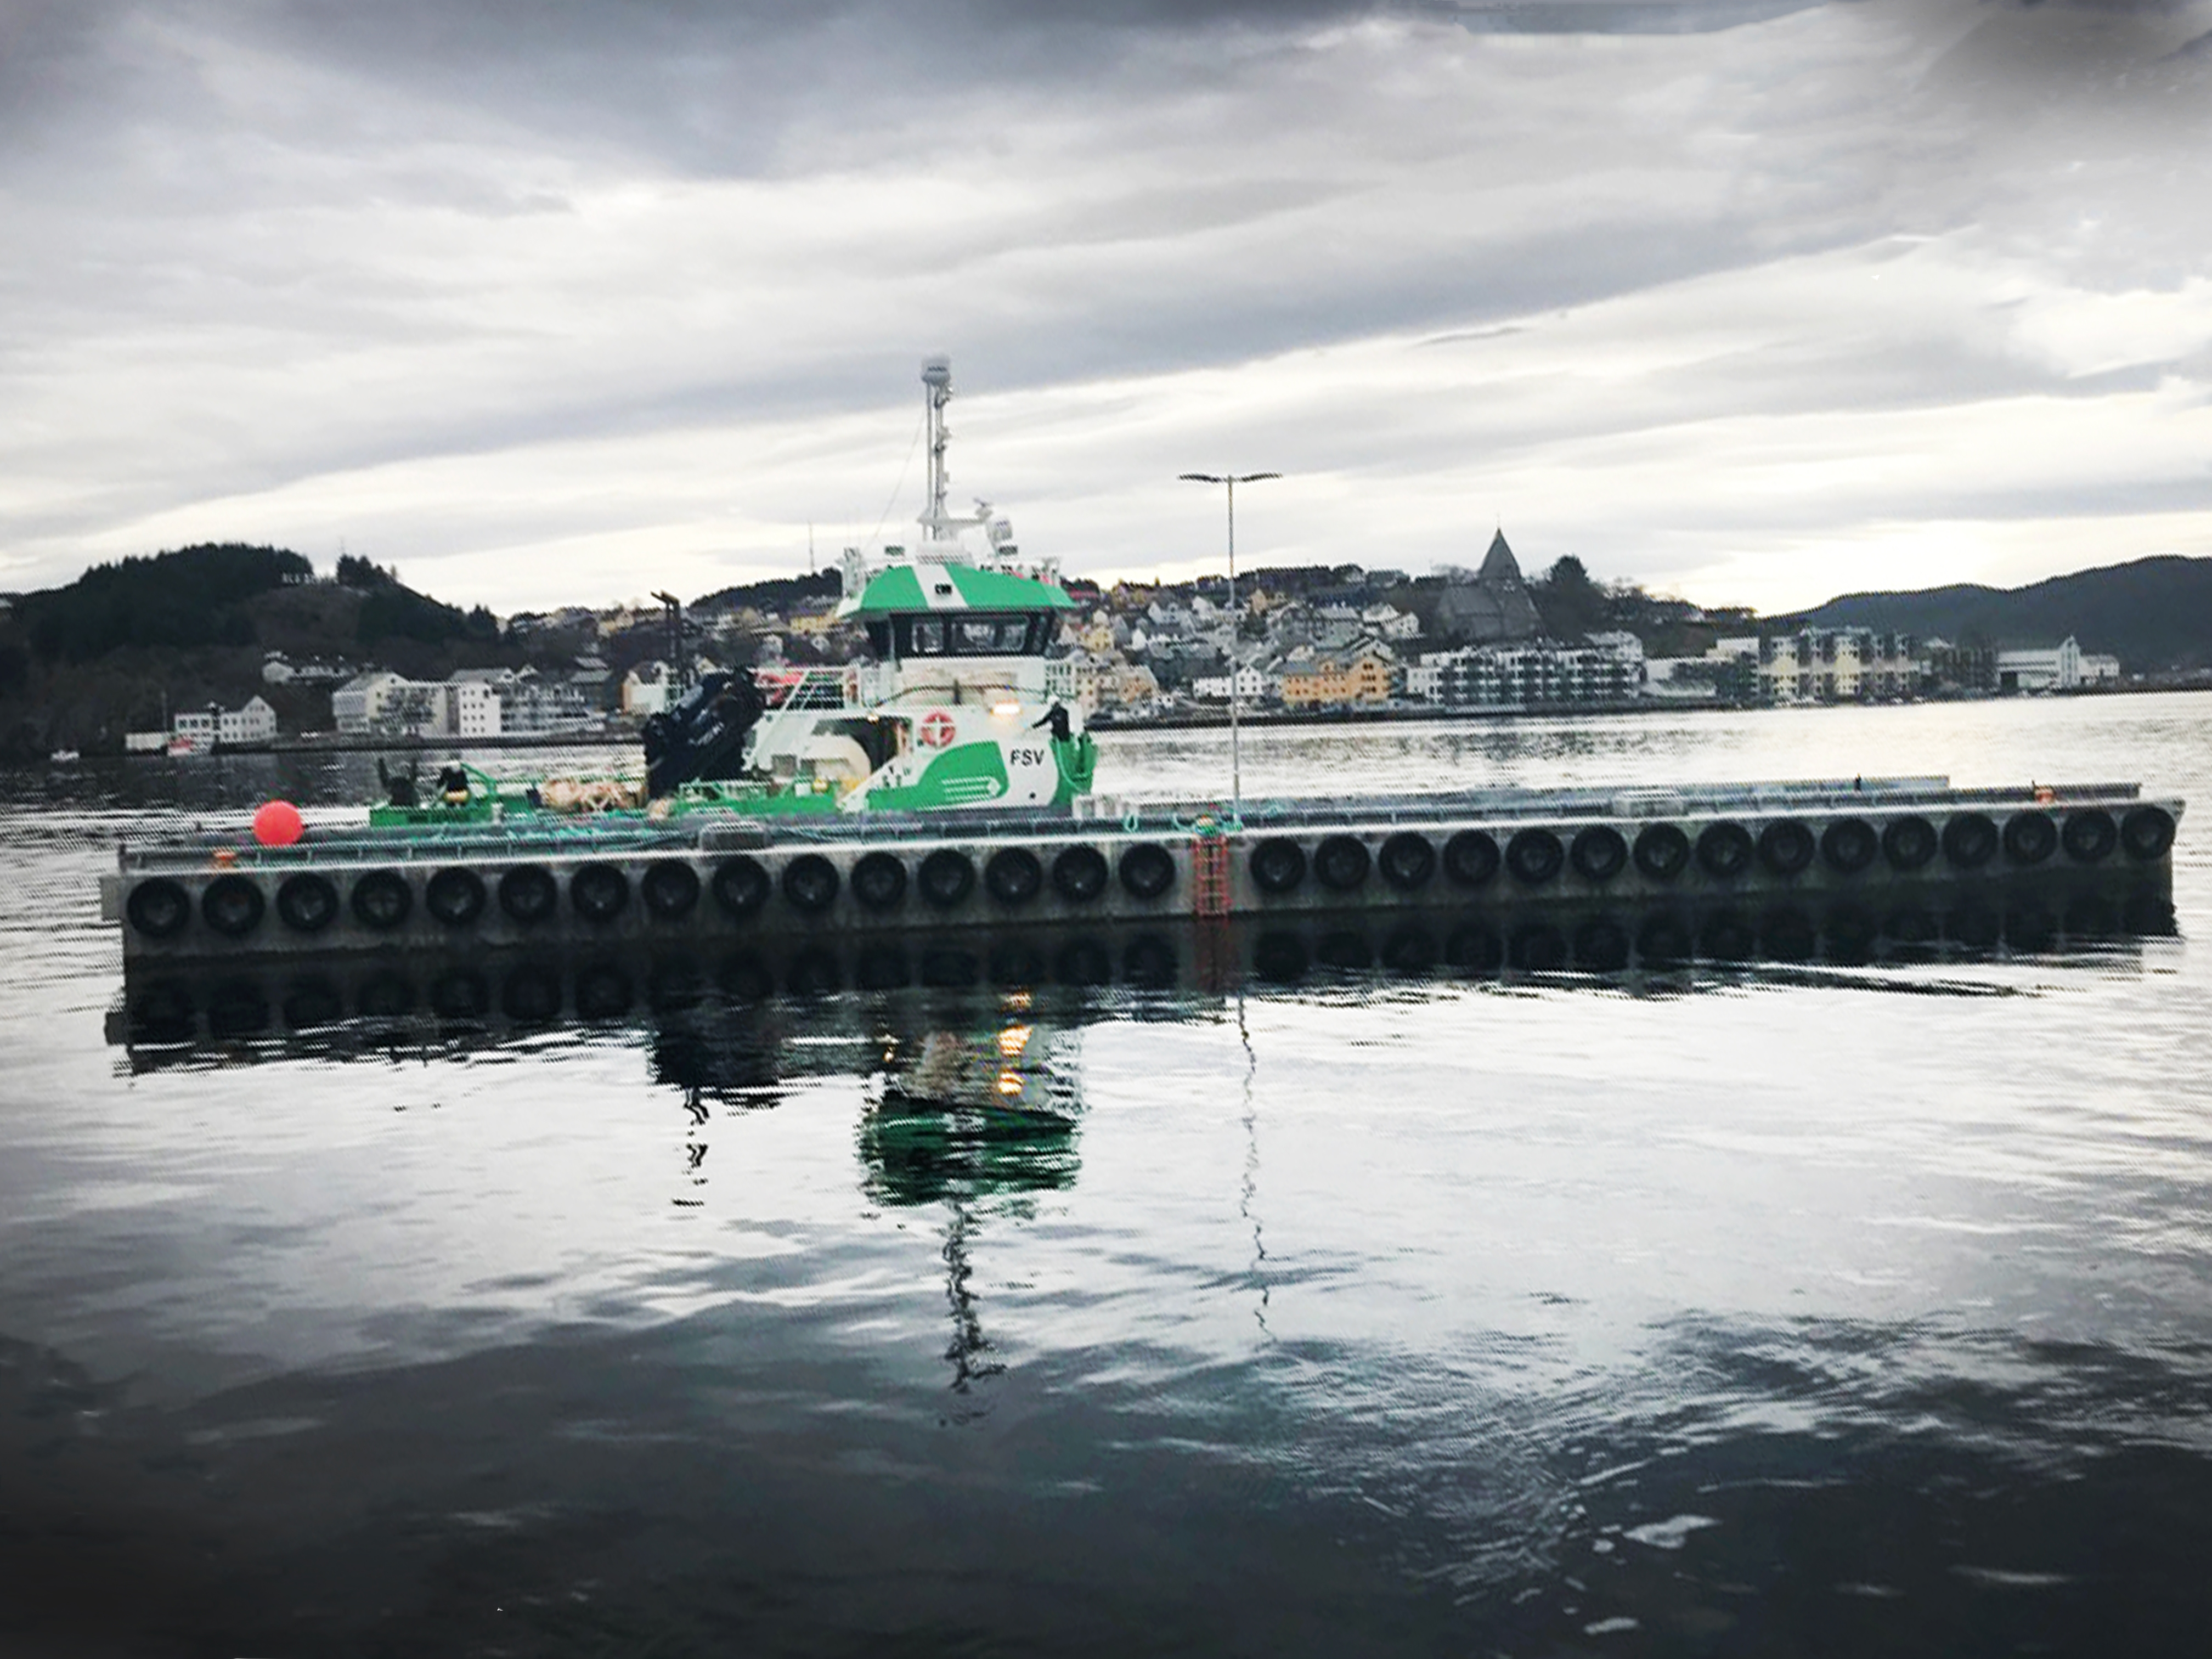 https://www.marinasolutions.no/uploads/redigert-slep-kristiansund.jpg